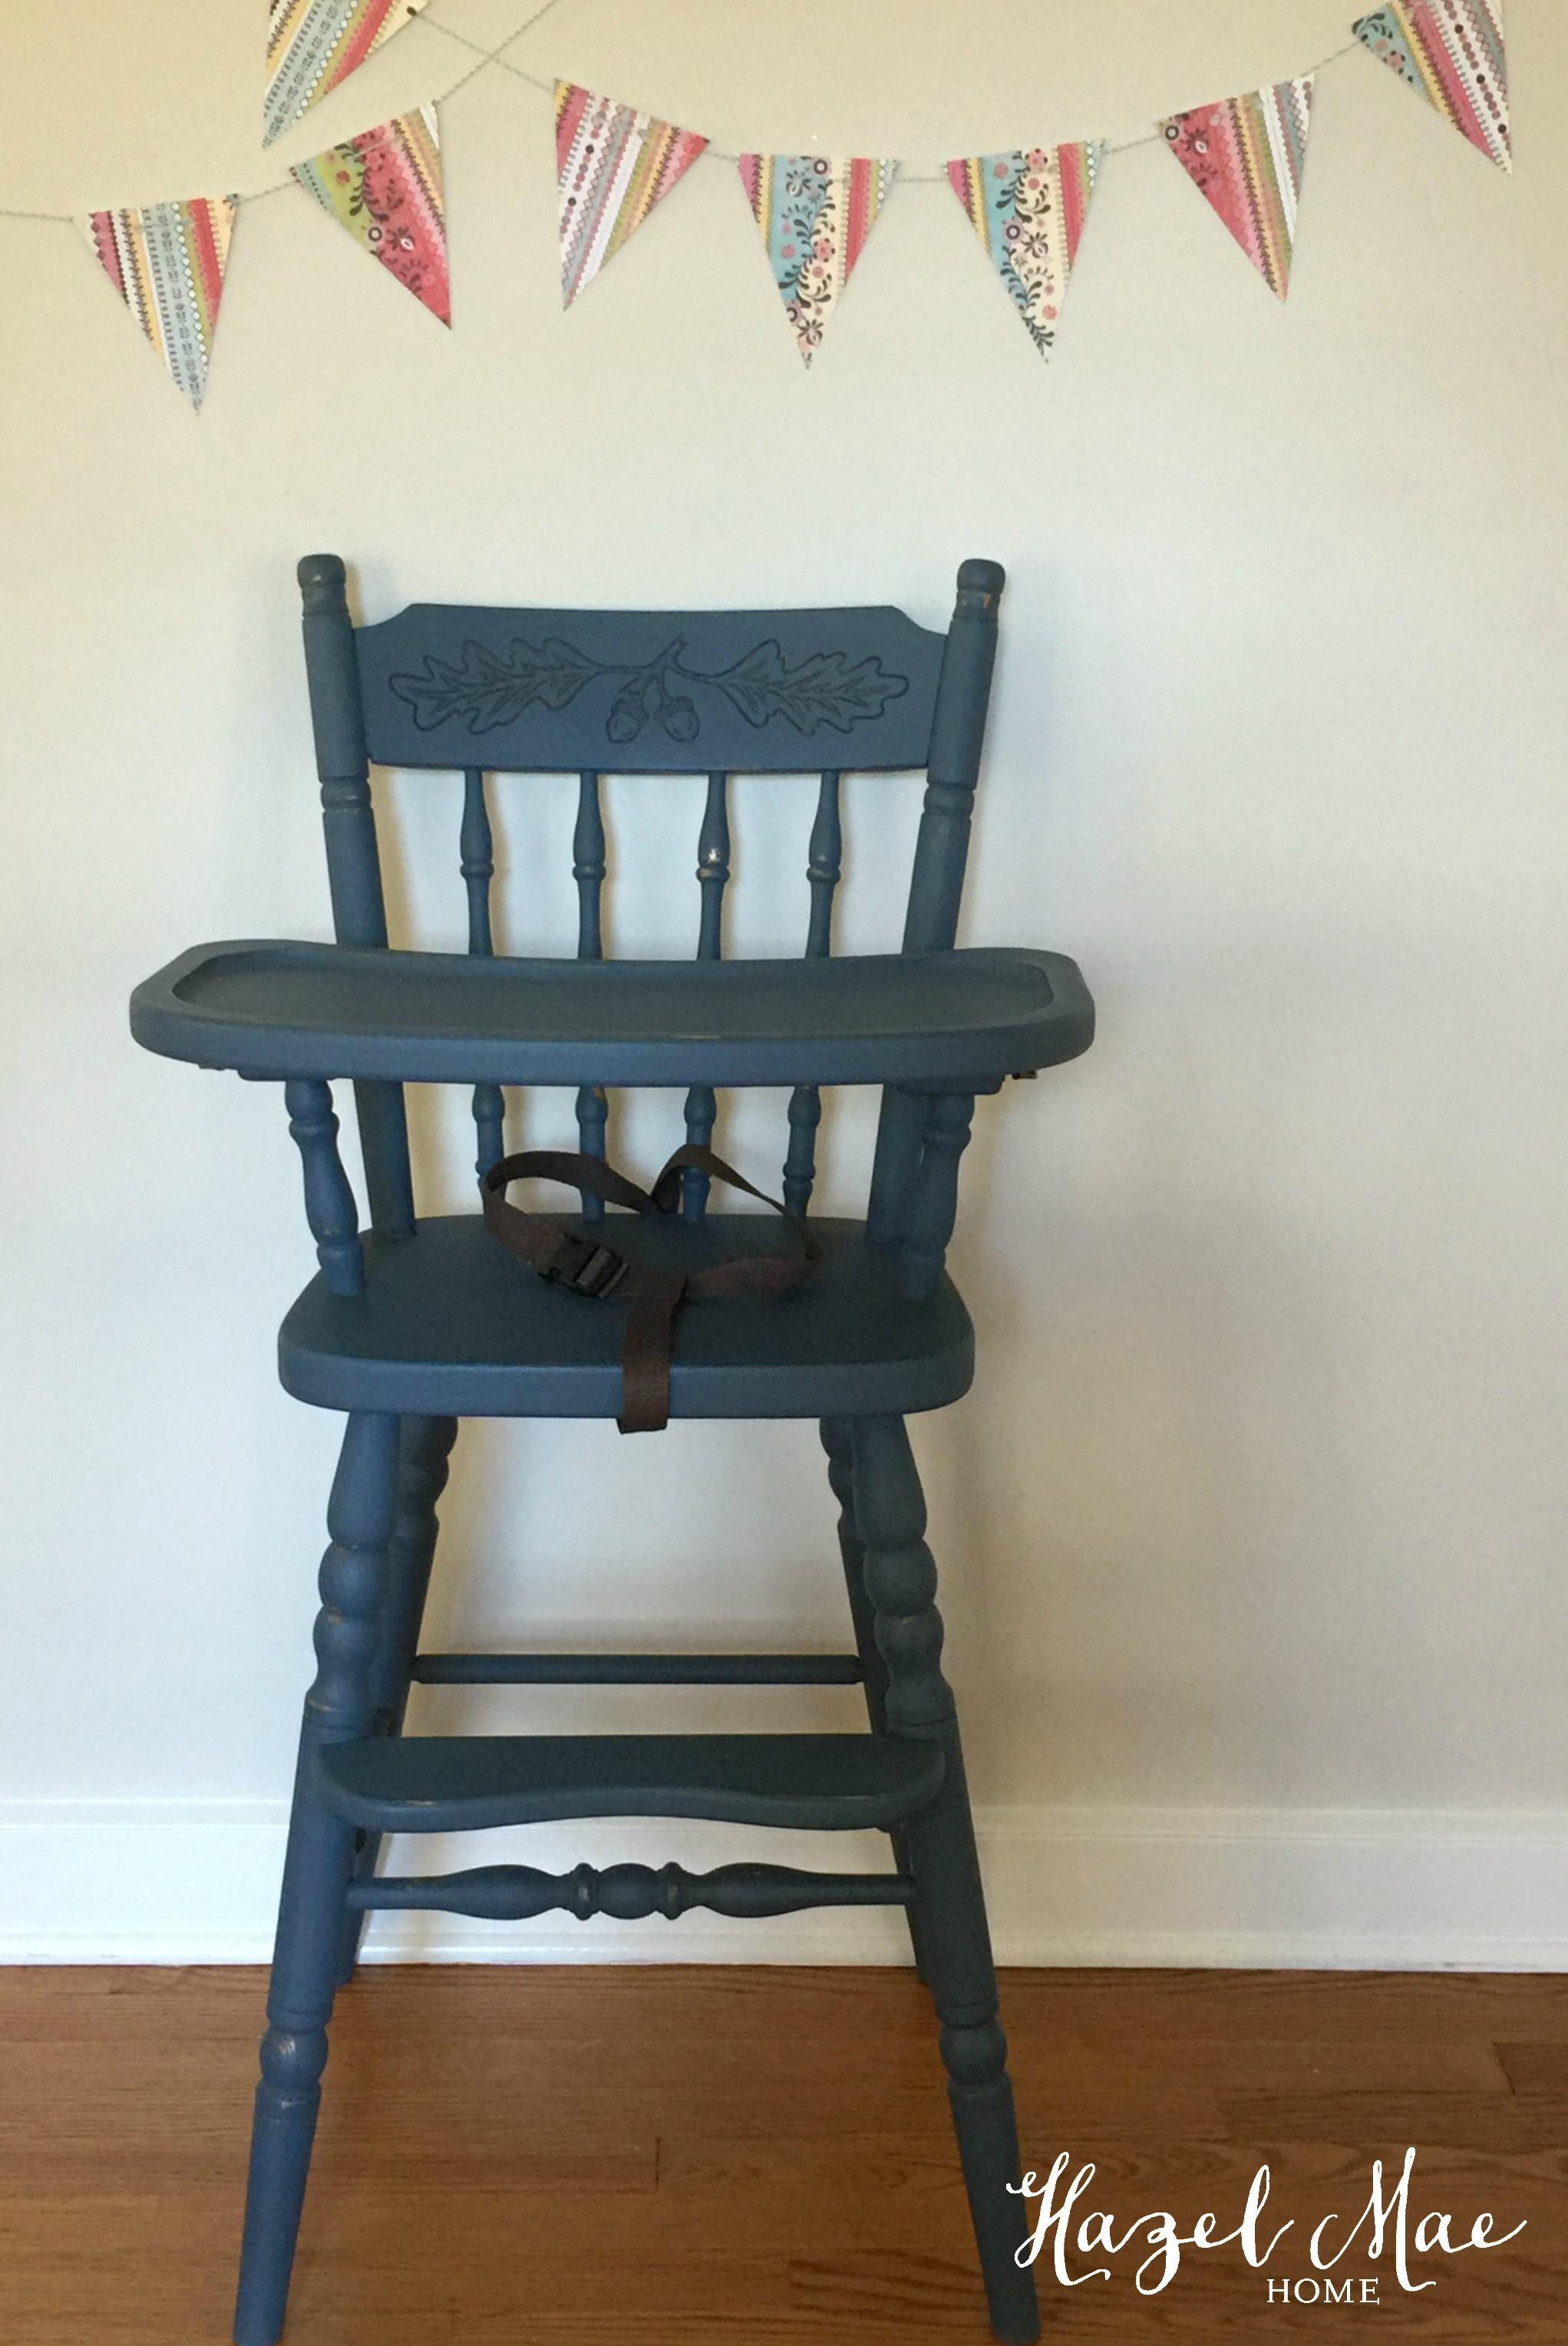 Vintage wooden high chair - Bluehighchair1